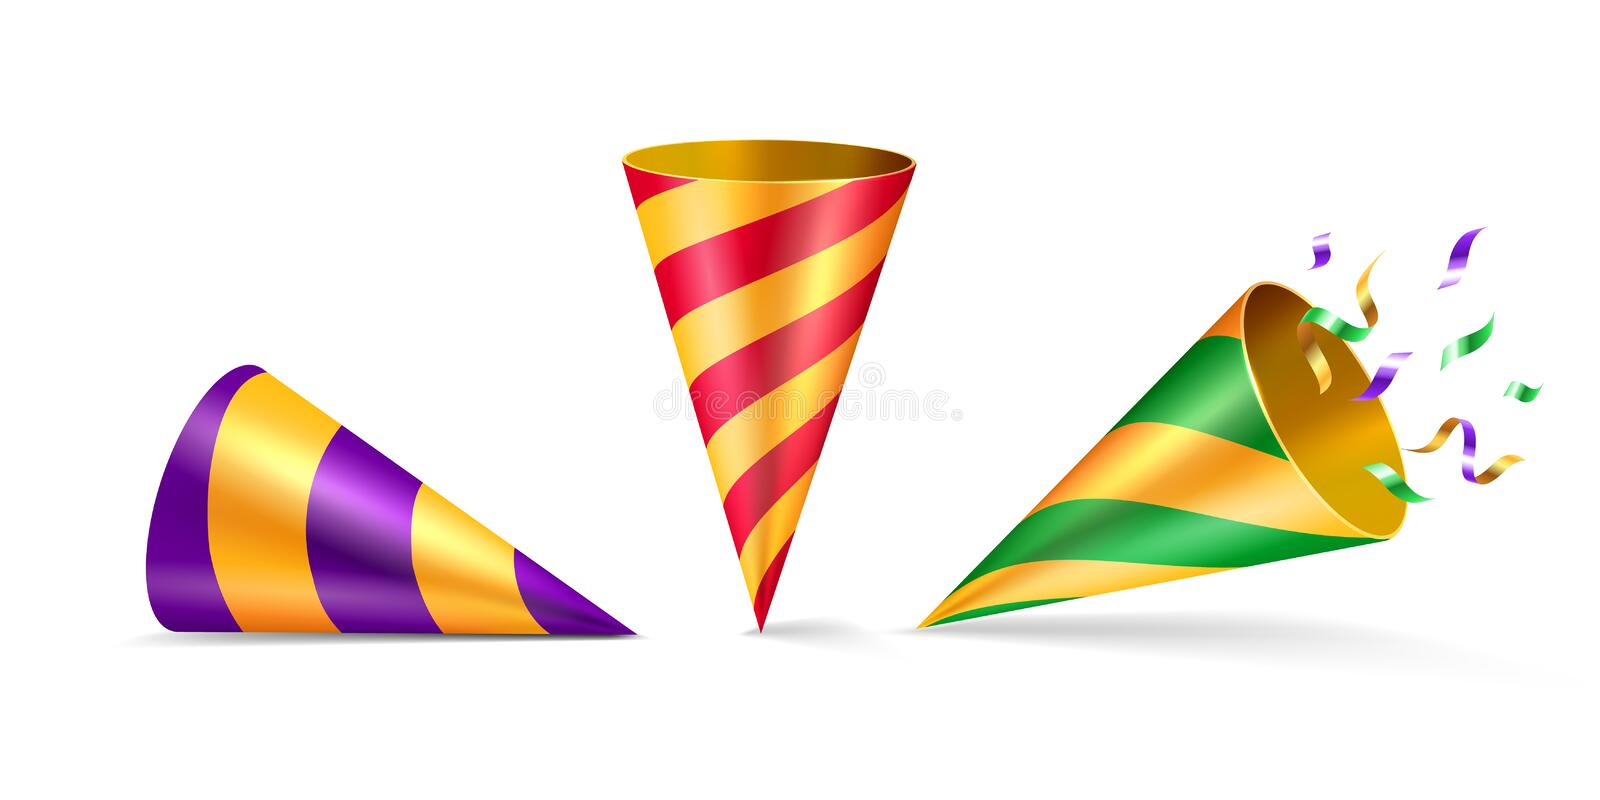 Set of isolated party hat or cone birthday hat vector illustration